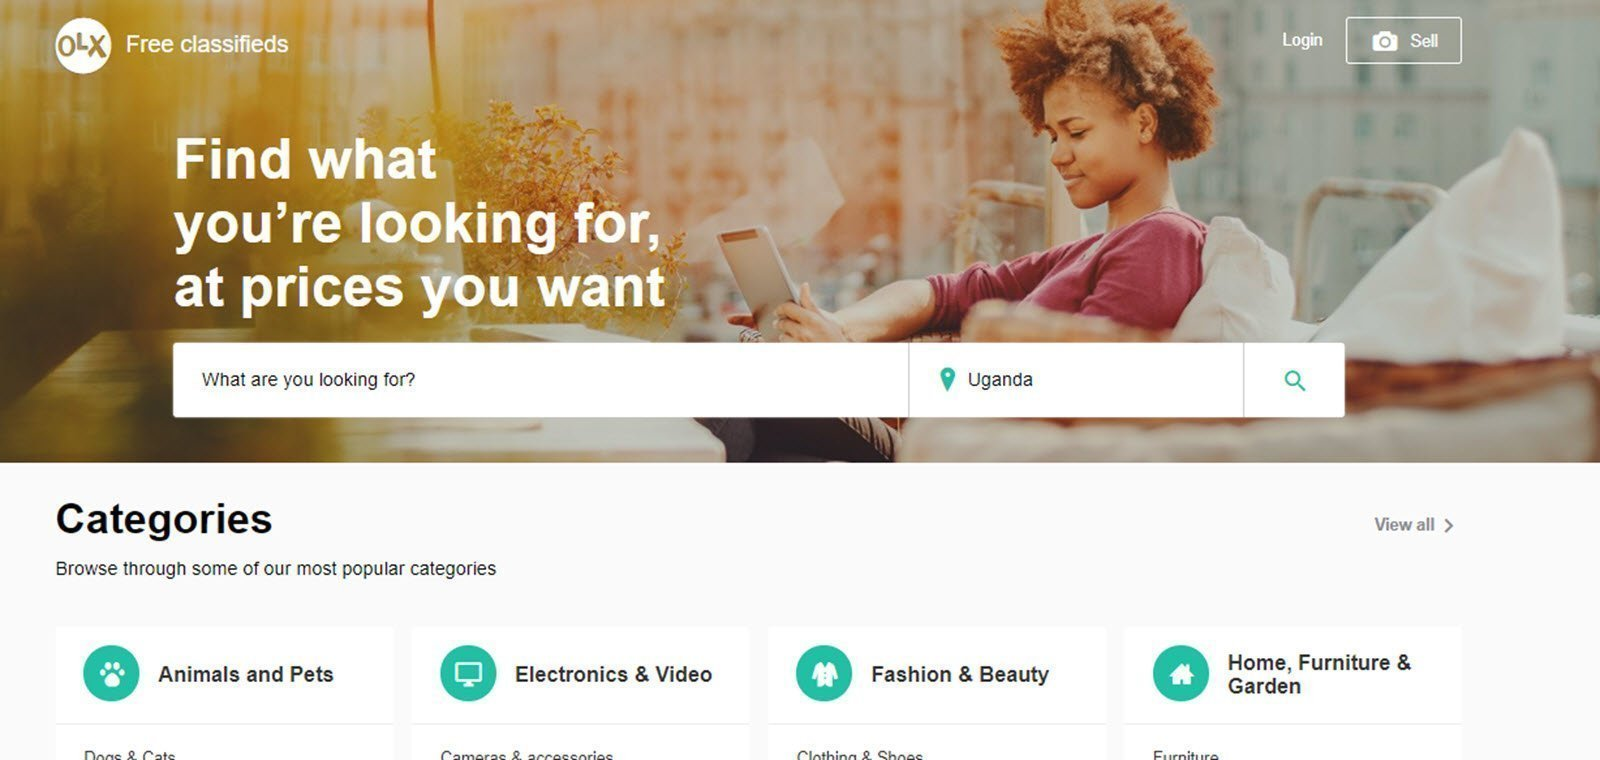 OLX gives its website a fresh new design together with a